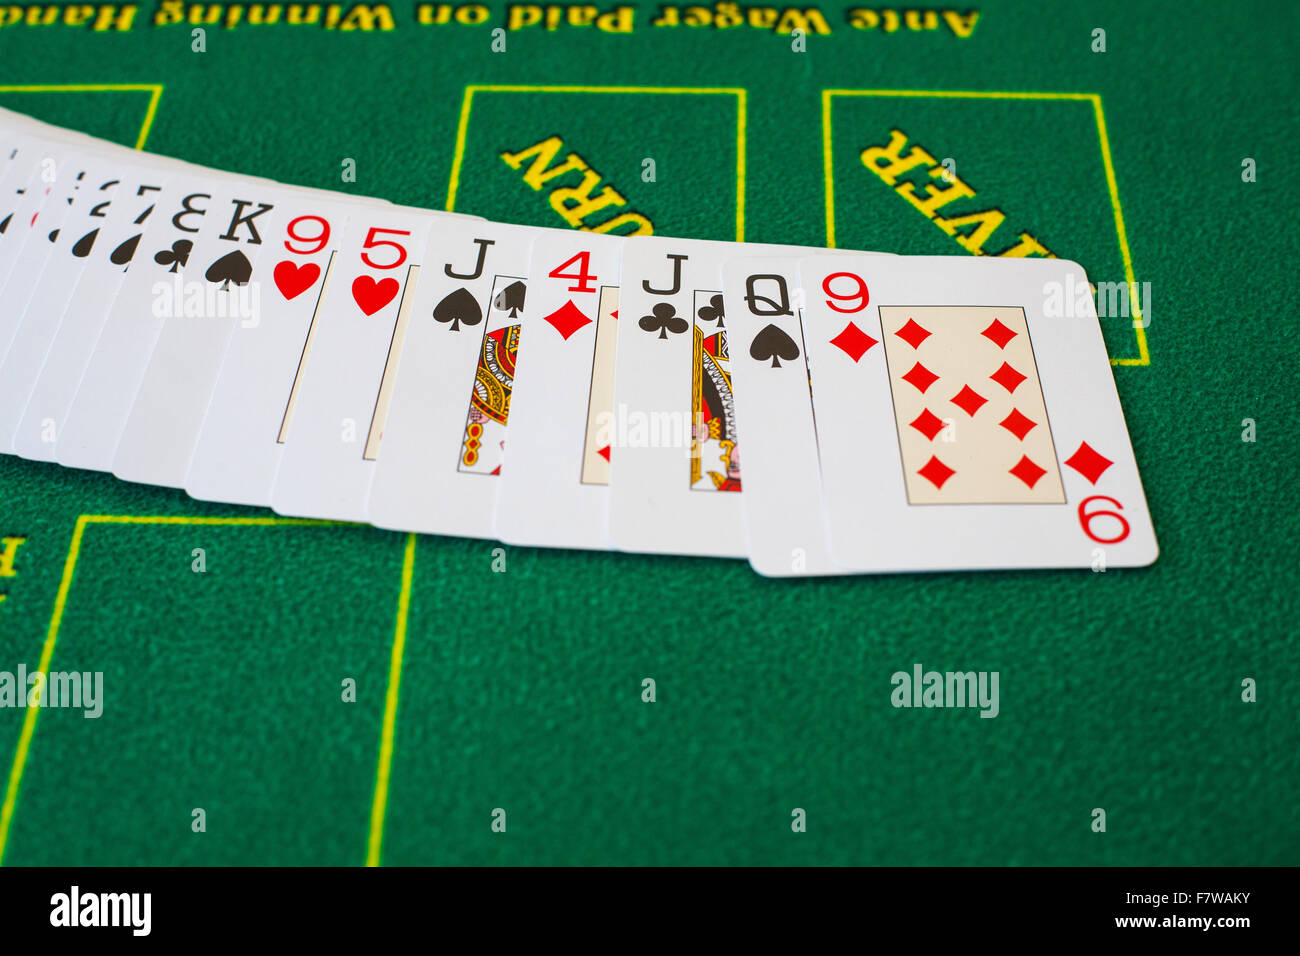 French cards for Texas hold 'em on casino table poker gambling game bet risk - Stock Image